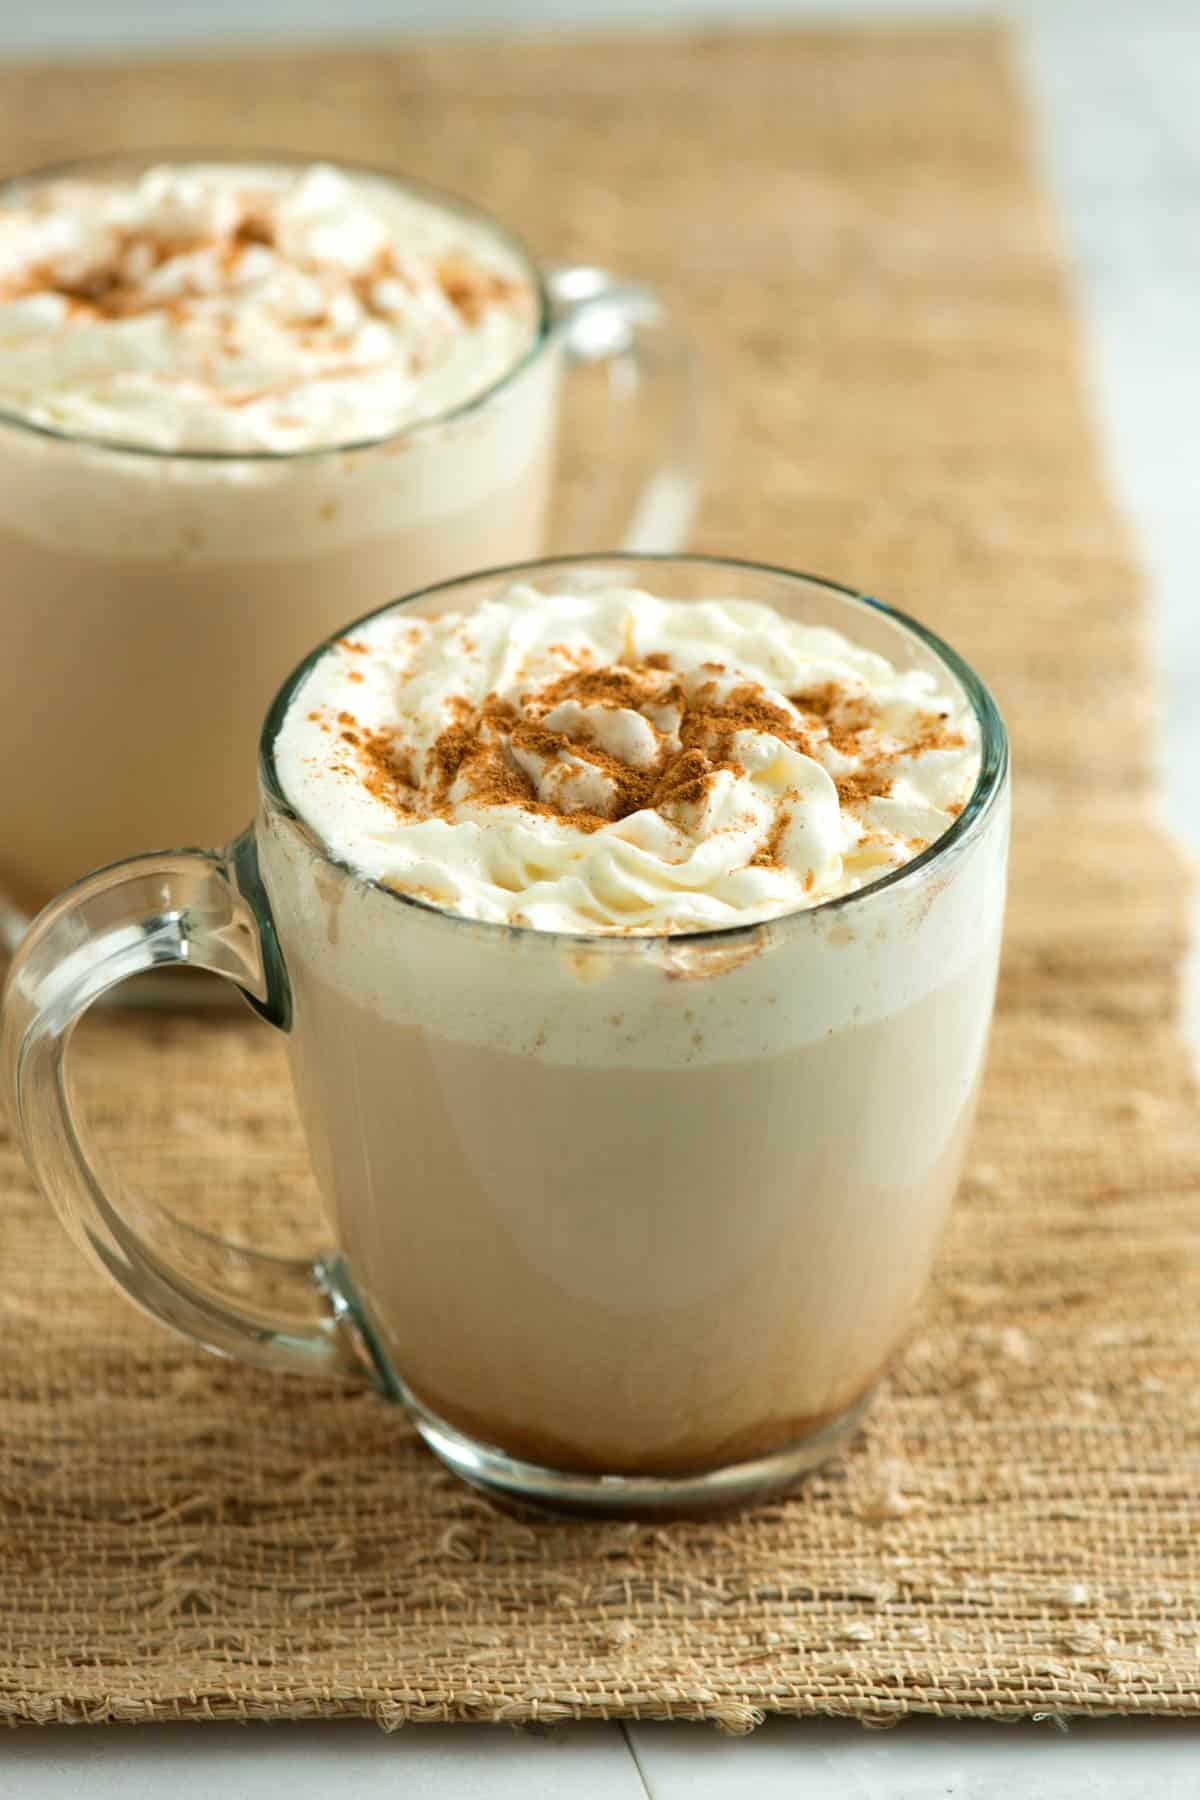 Best Homemade Pumpkin Spice Latte Recipe in 10 Minutes!